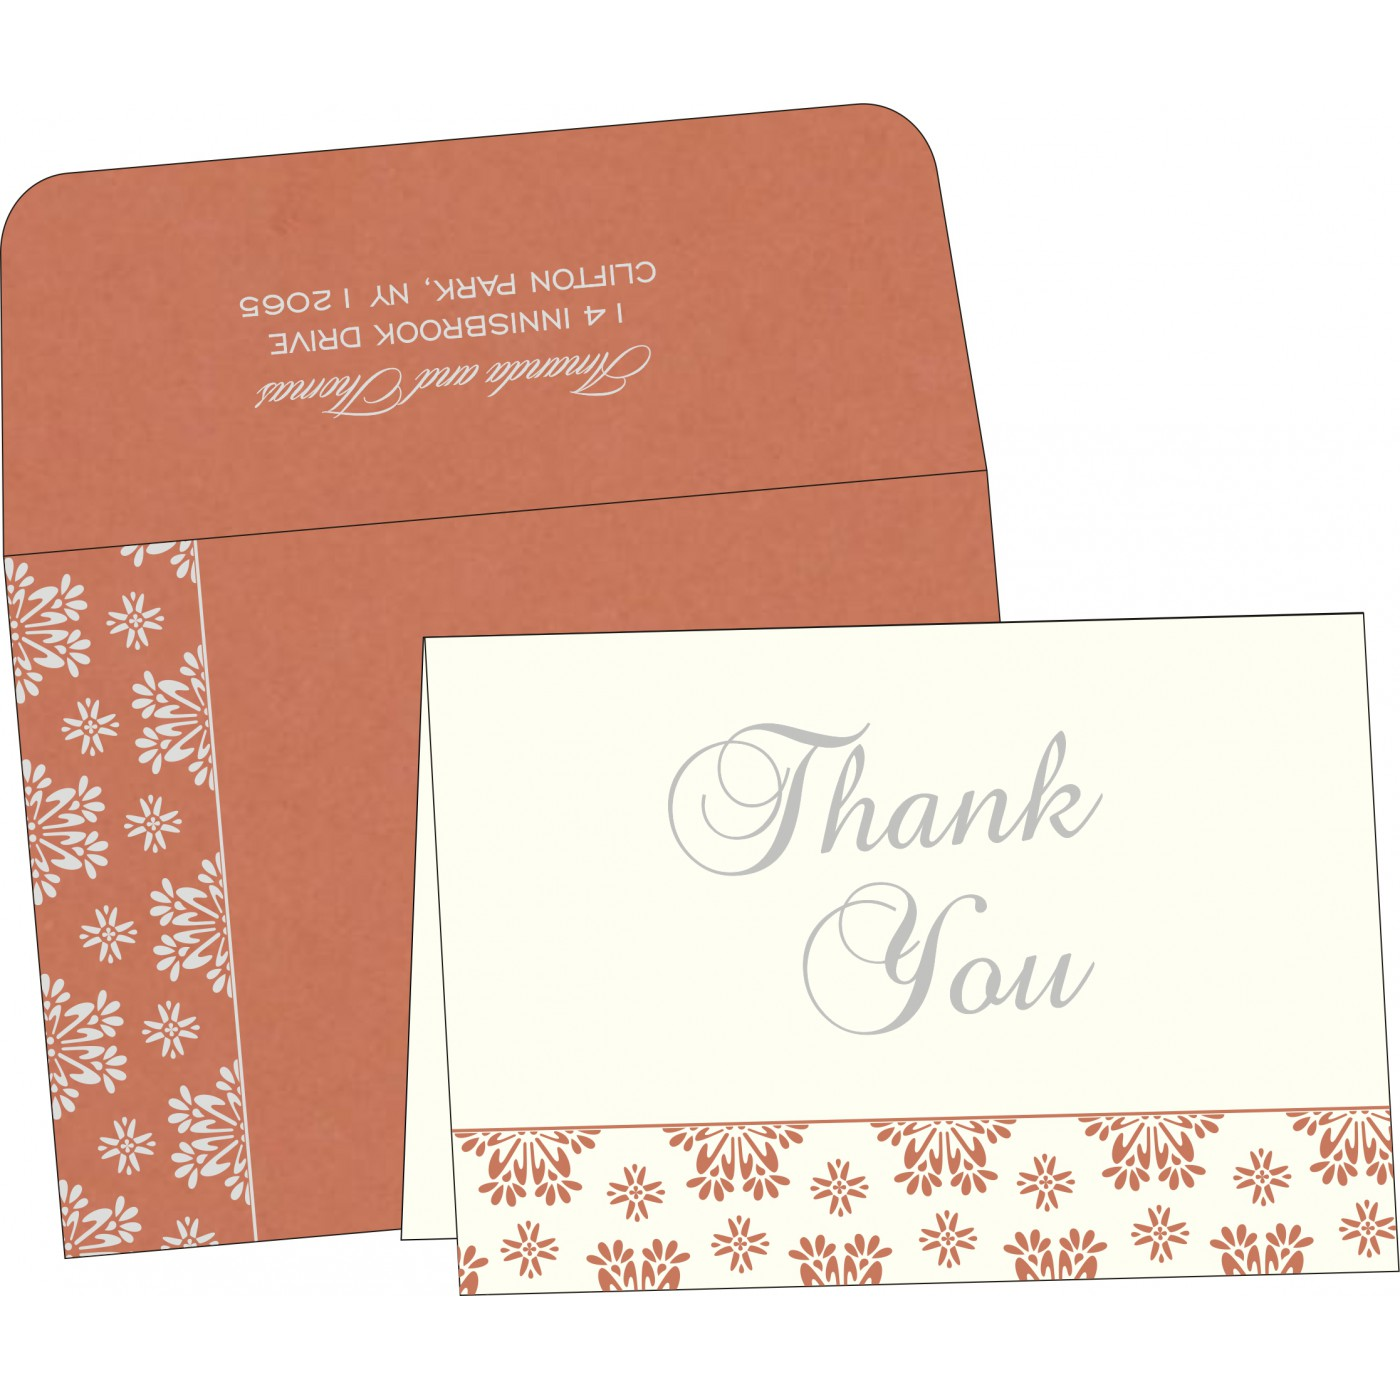 Thank You Cards - TYC-8237C